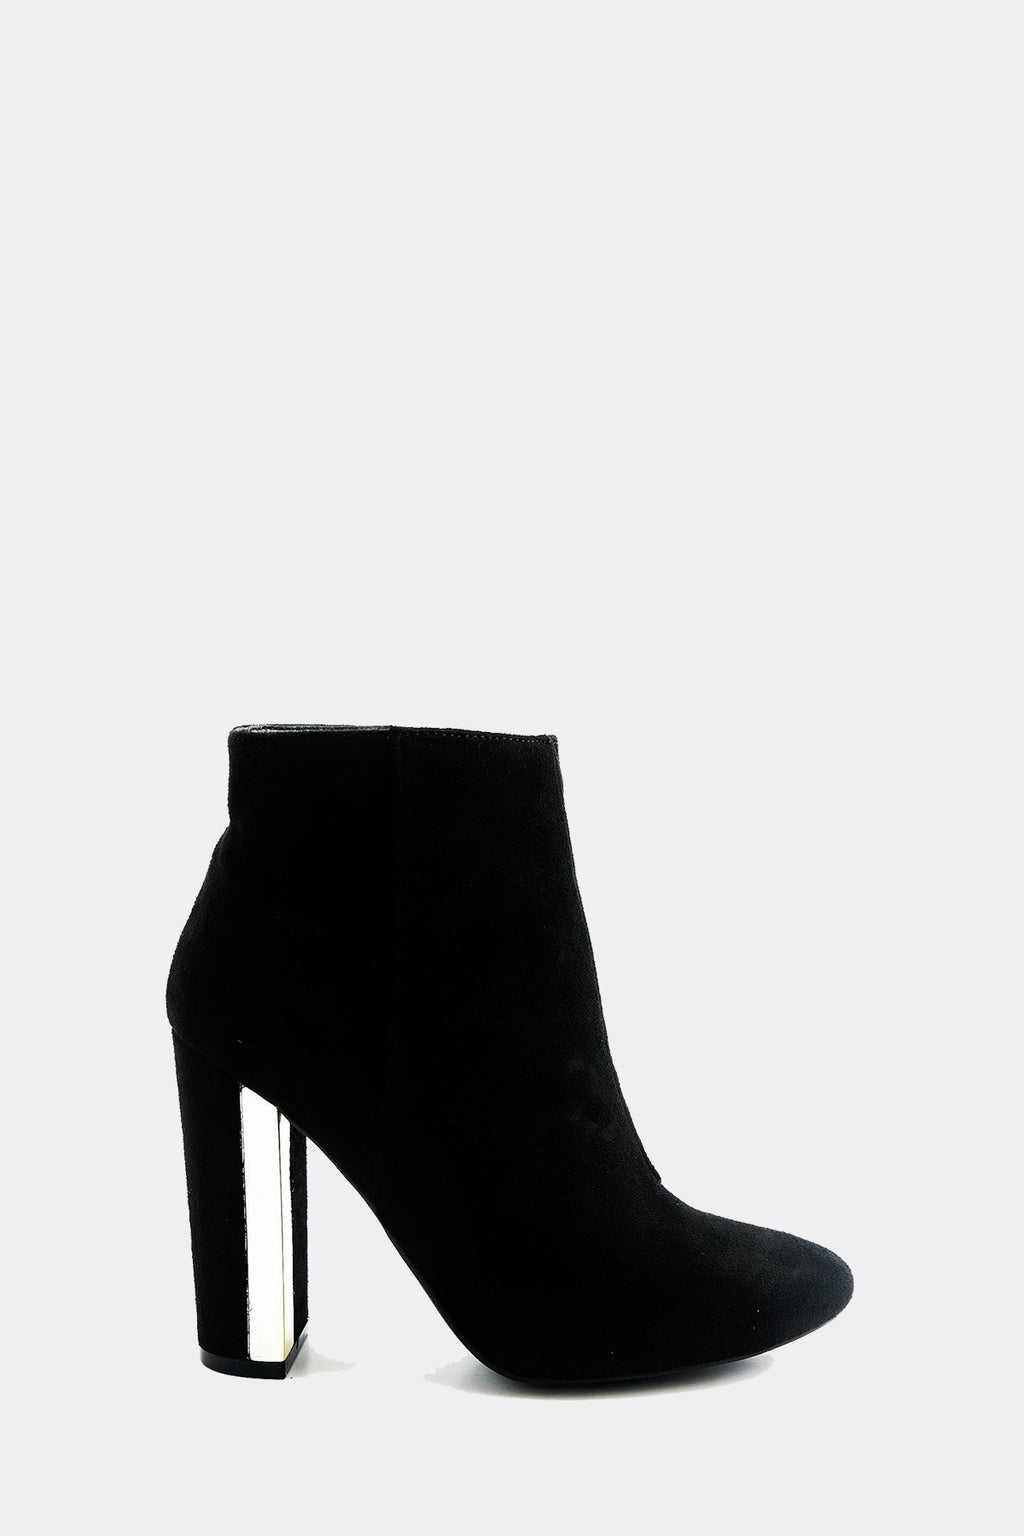 Kyra Suede Bootie Heel /// Only Size 6.5, 7, 9, 10 Left ///